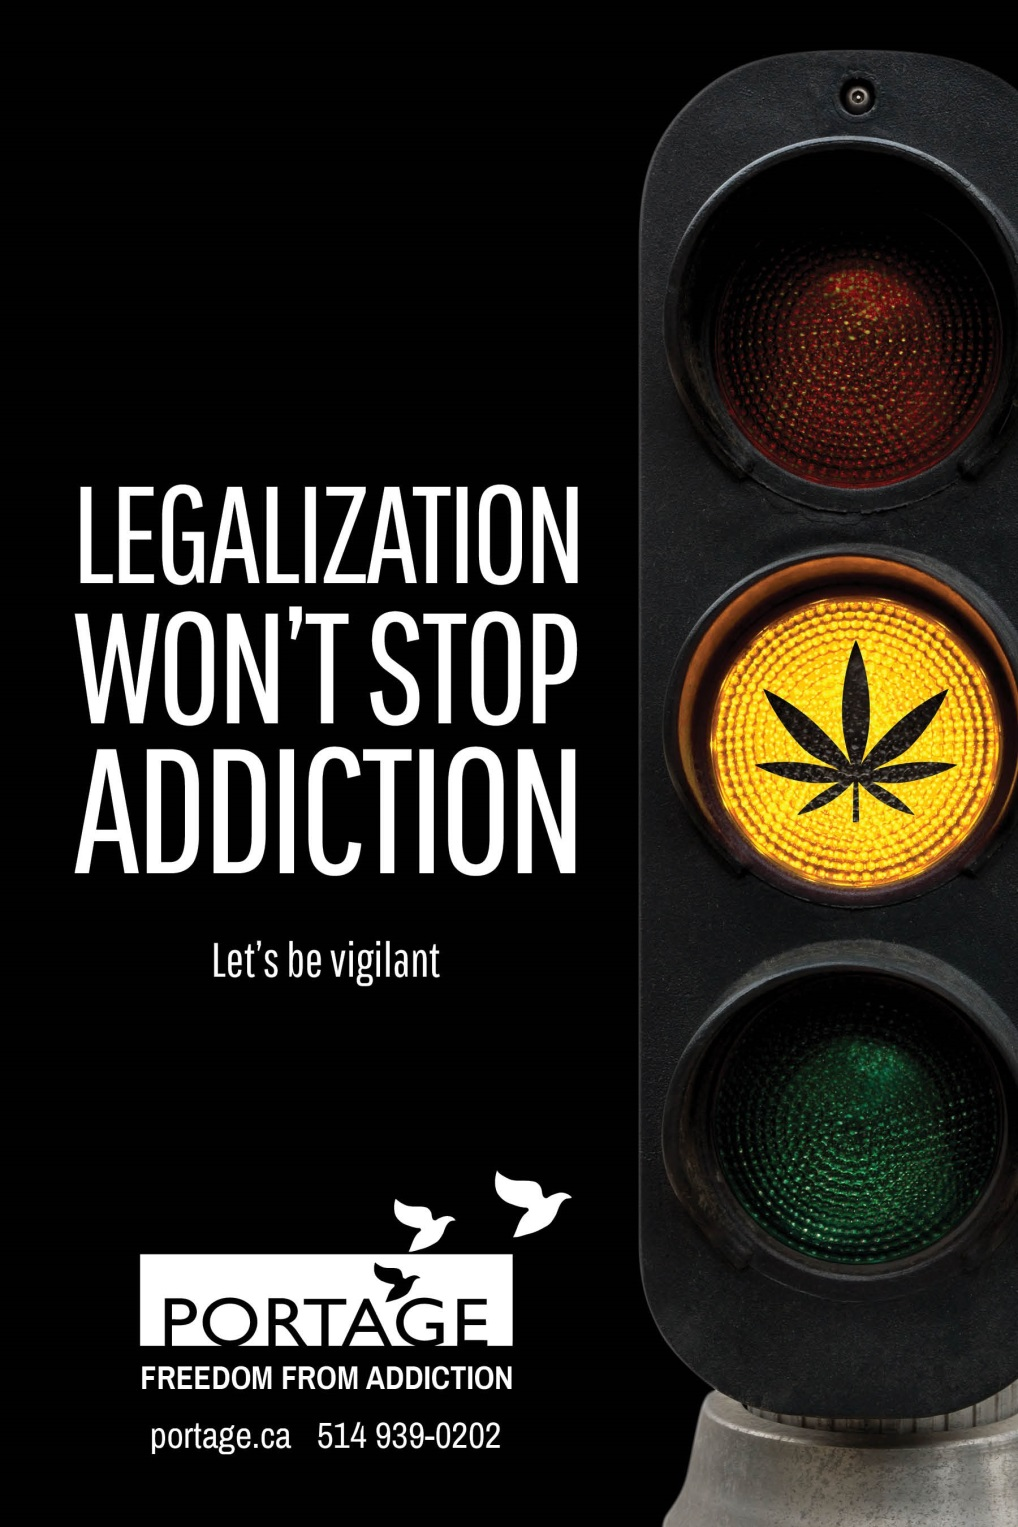 Legalization won't stop addiction